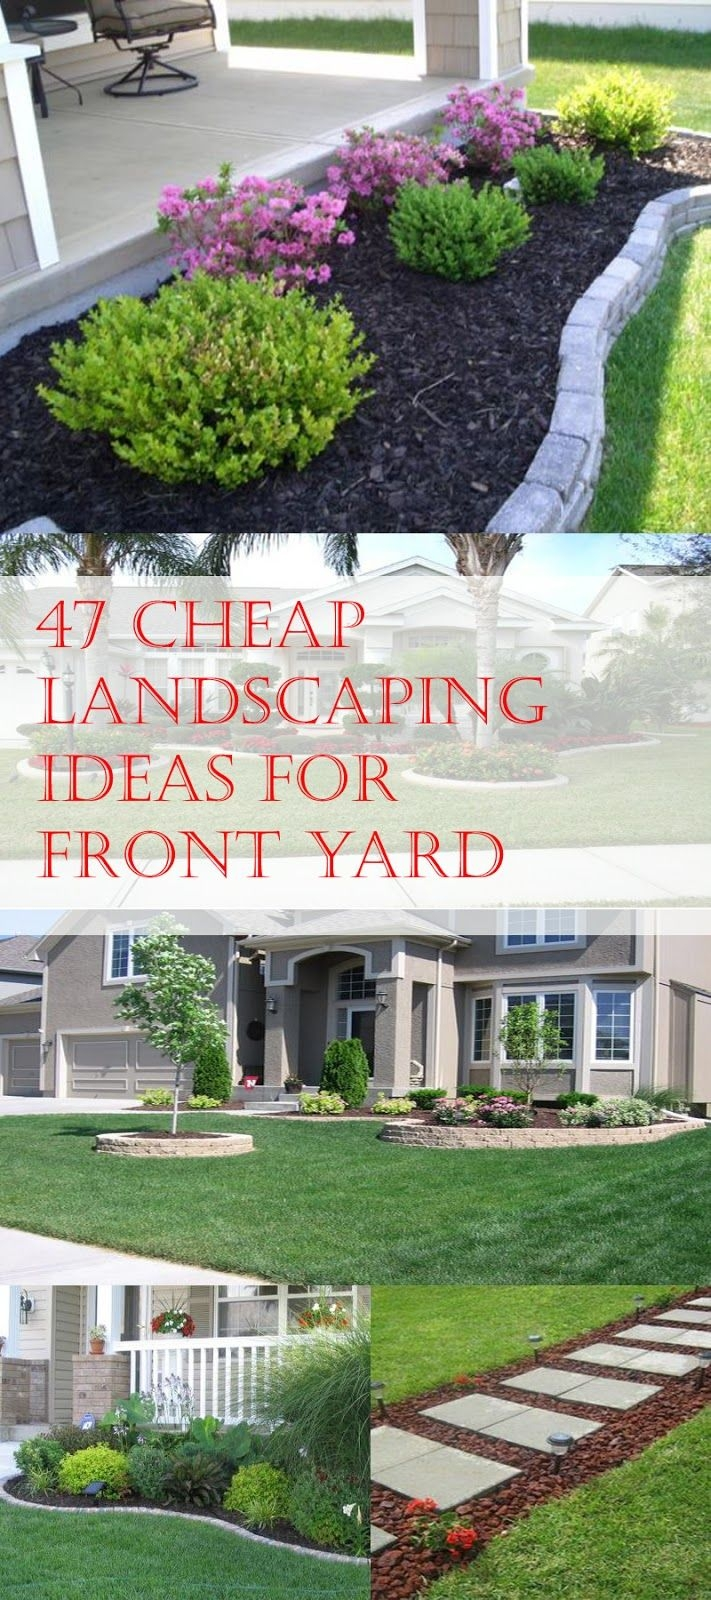 47 cheap landscaping ideas for front yard landscaping ideas